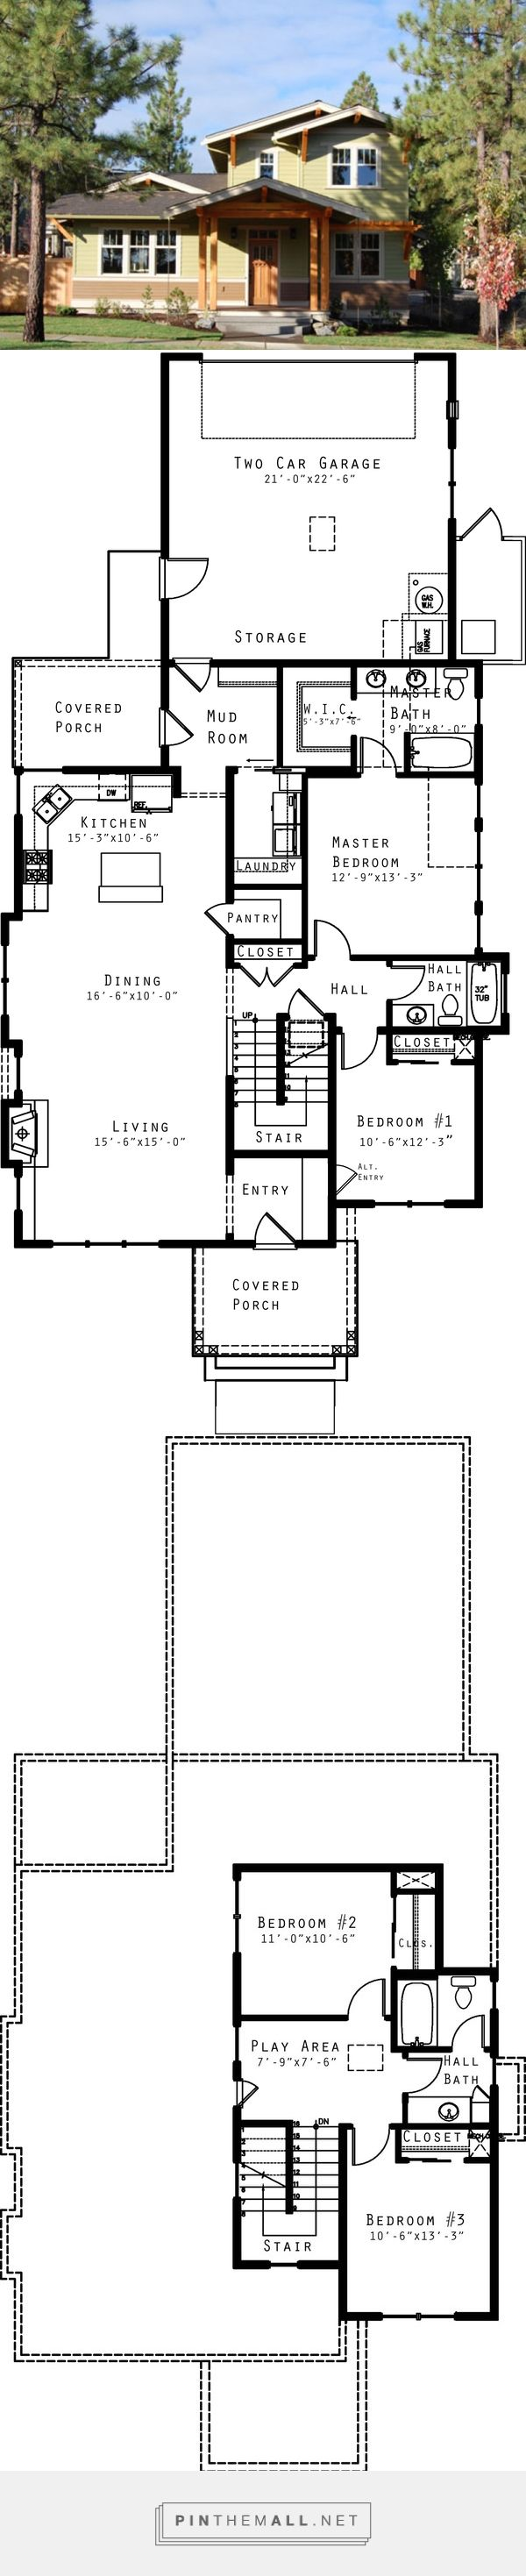 Craftsman Style House Plan - 4 Beds 3 Baths 1940 Sq/Ft Plan #434-16 - Swap stove and sink, change windows. For a side view Tiny porches- front porch swing? Doors for vestibule? Front closet? No bath handy to an entry